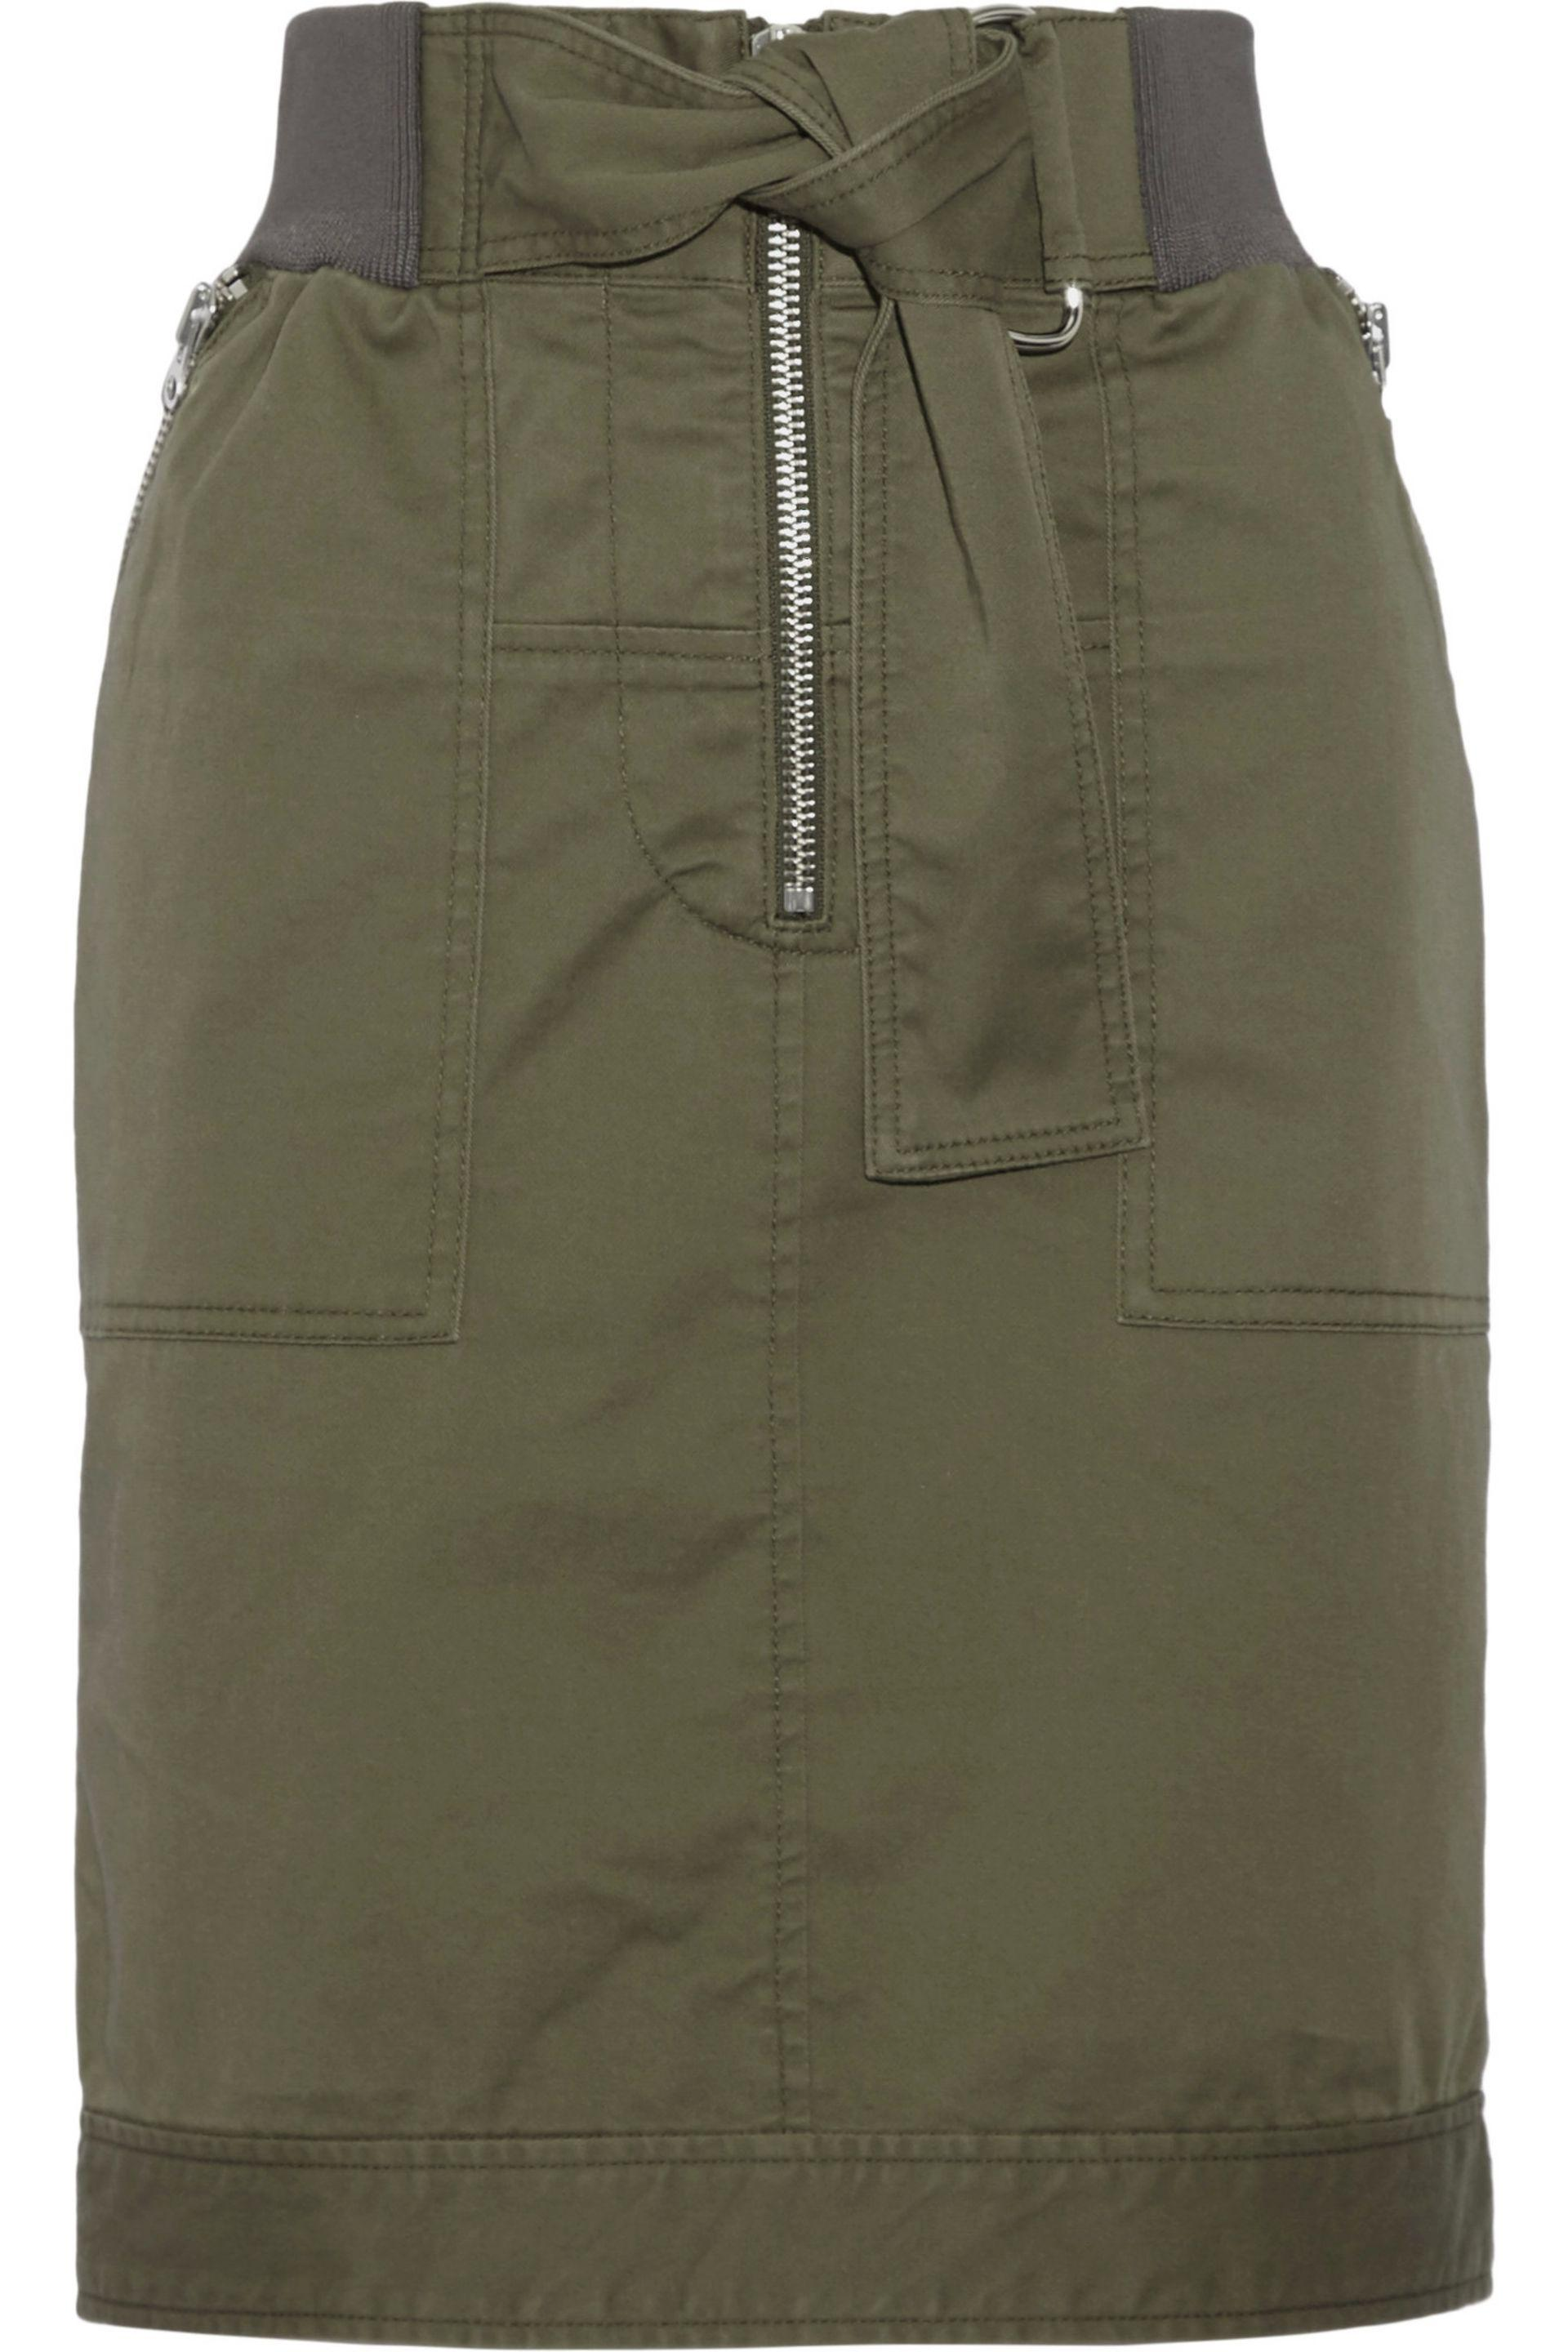 3.1 Phillip Lim Woman Silk Mini Dress Army Green Size 2 3.1 Phillip Lim Buy Cheap Latest Collections Clearance Reliable Buy Cheap Nicekicks Clearance Release Dates XZbhW3Ge